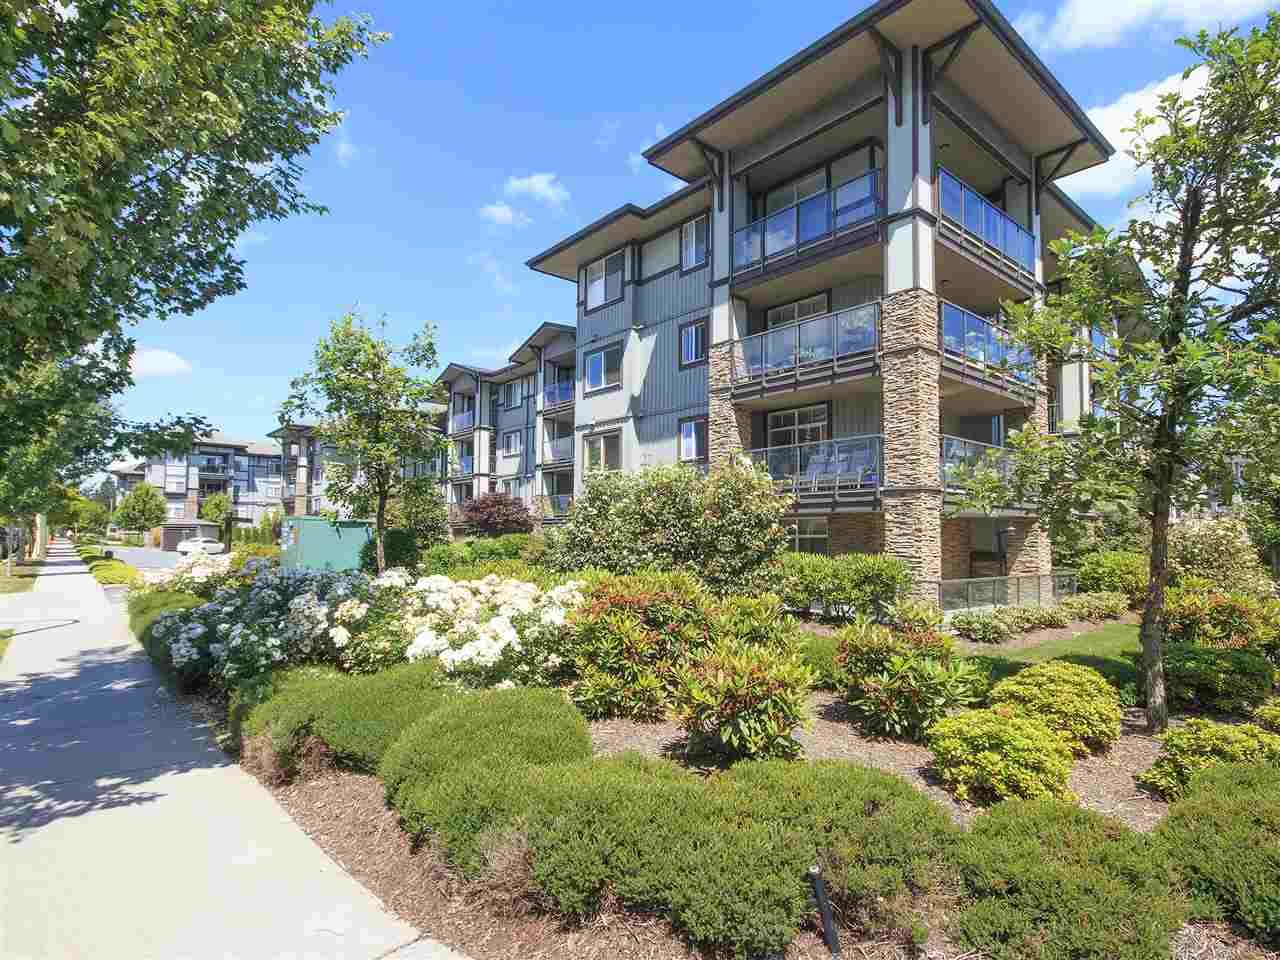 """Main Photo: 410 2038 SANDALWOOD Crescent in Abbotsford: Central Abbotsford Condo for sale in """"THE ELEMENT"""" : MLS®# R2185056"""